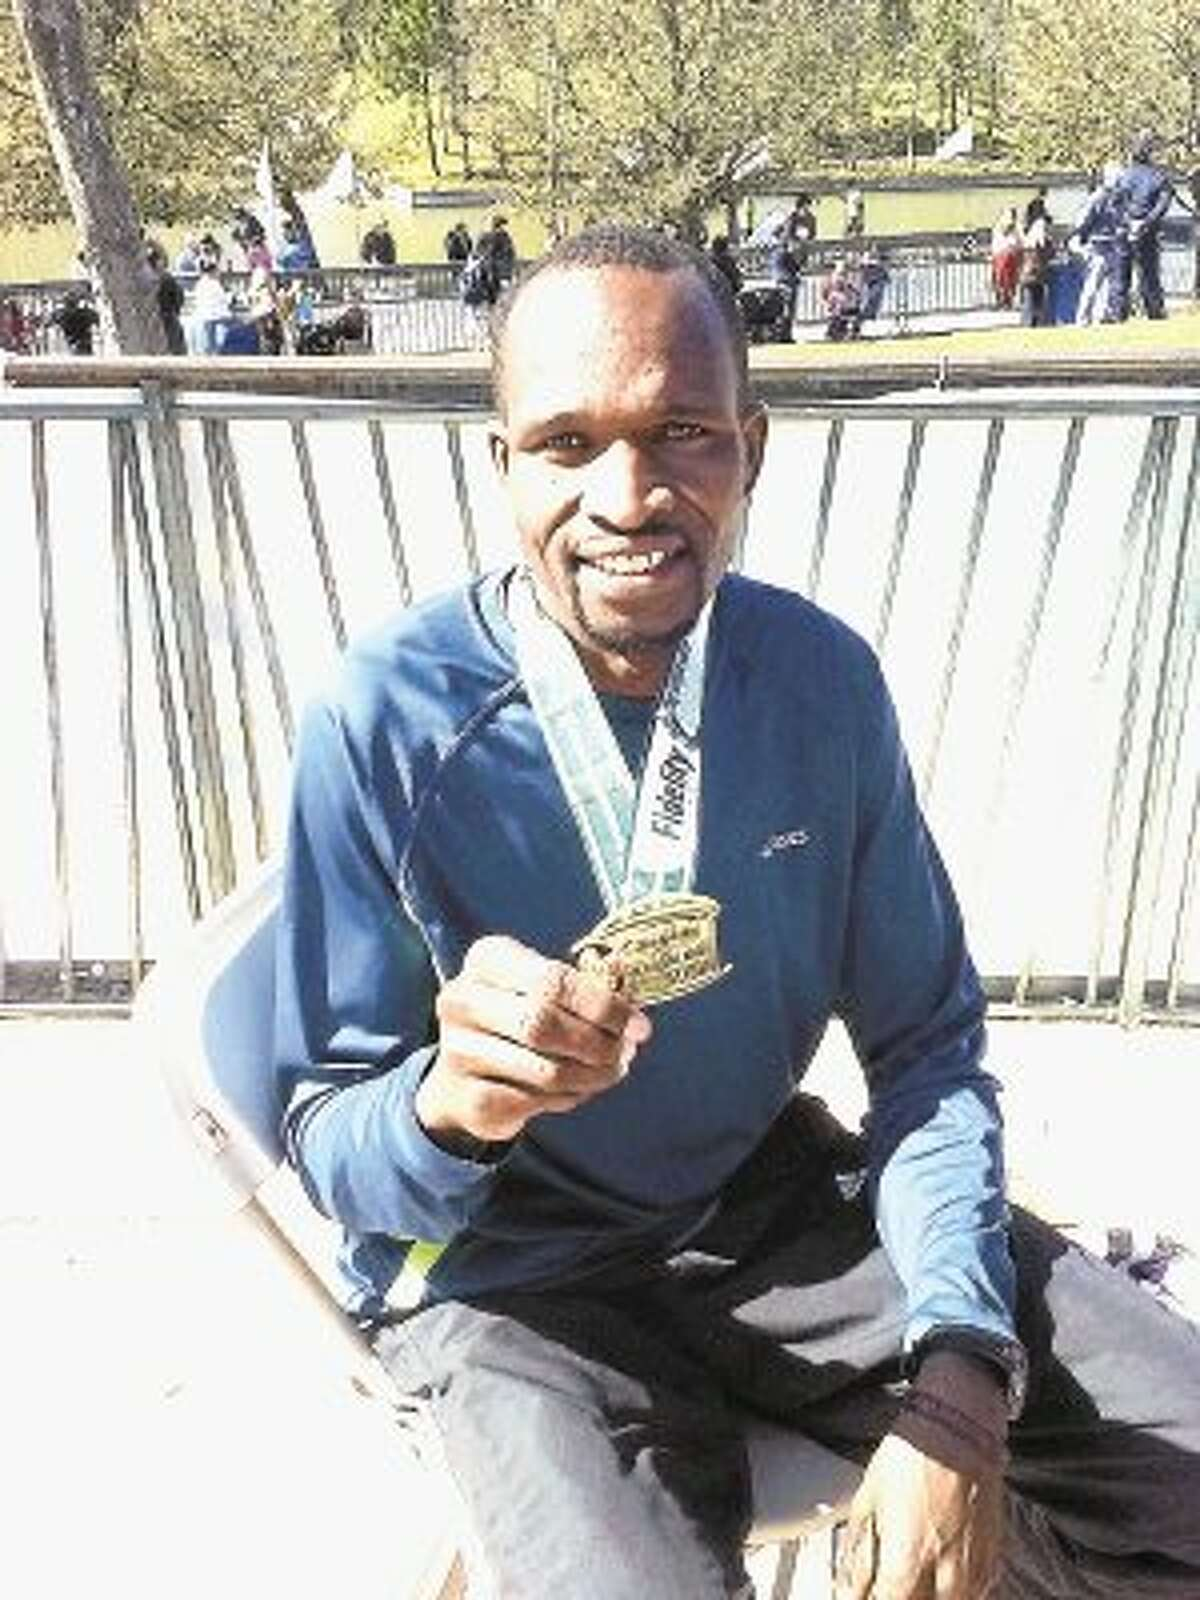 Richard Kessio of Kenya shows his medallion from winning 2013 The Woodlands Marathon.